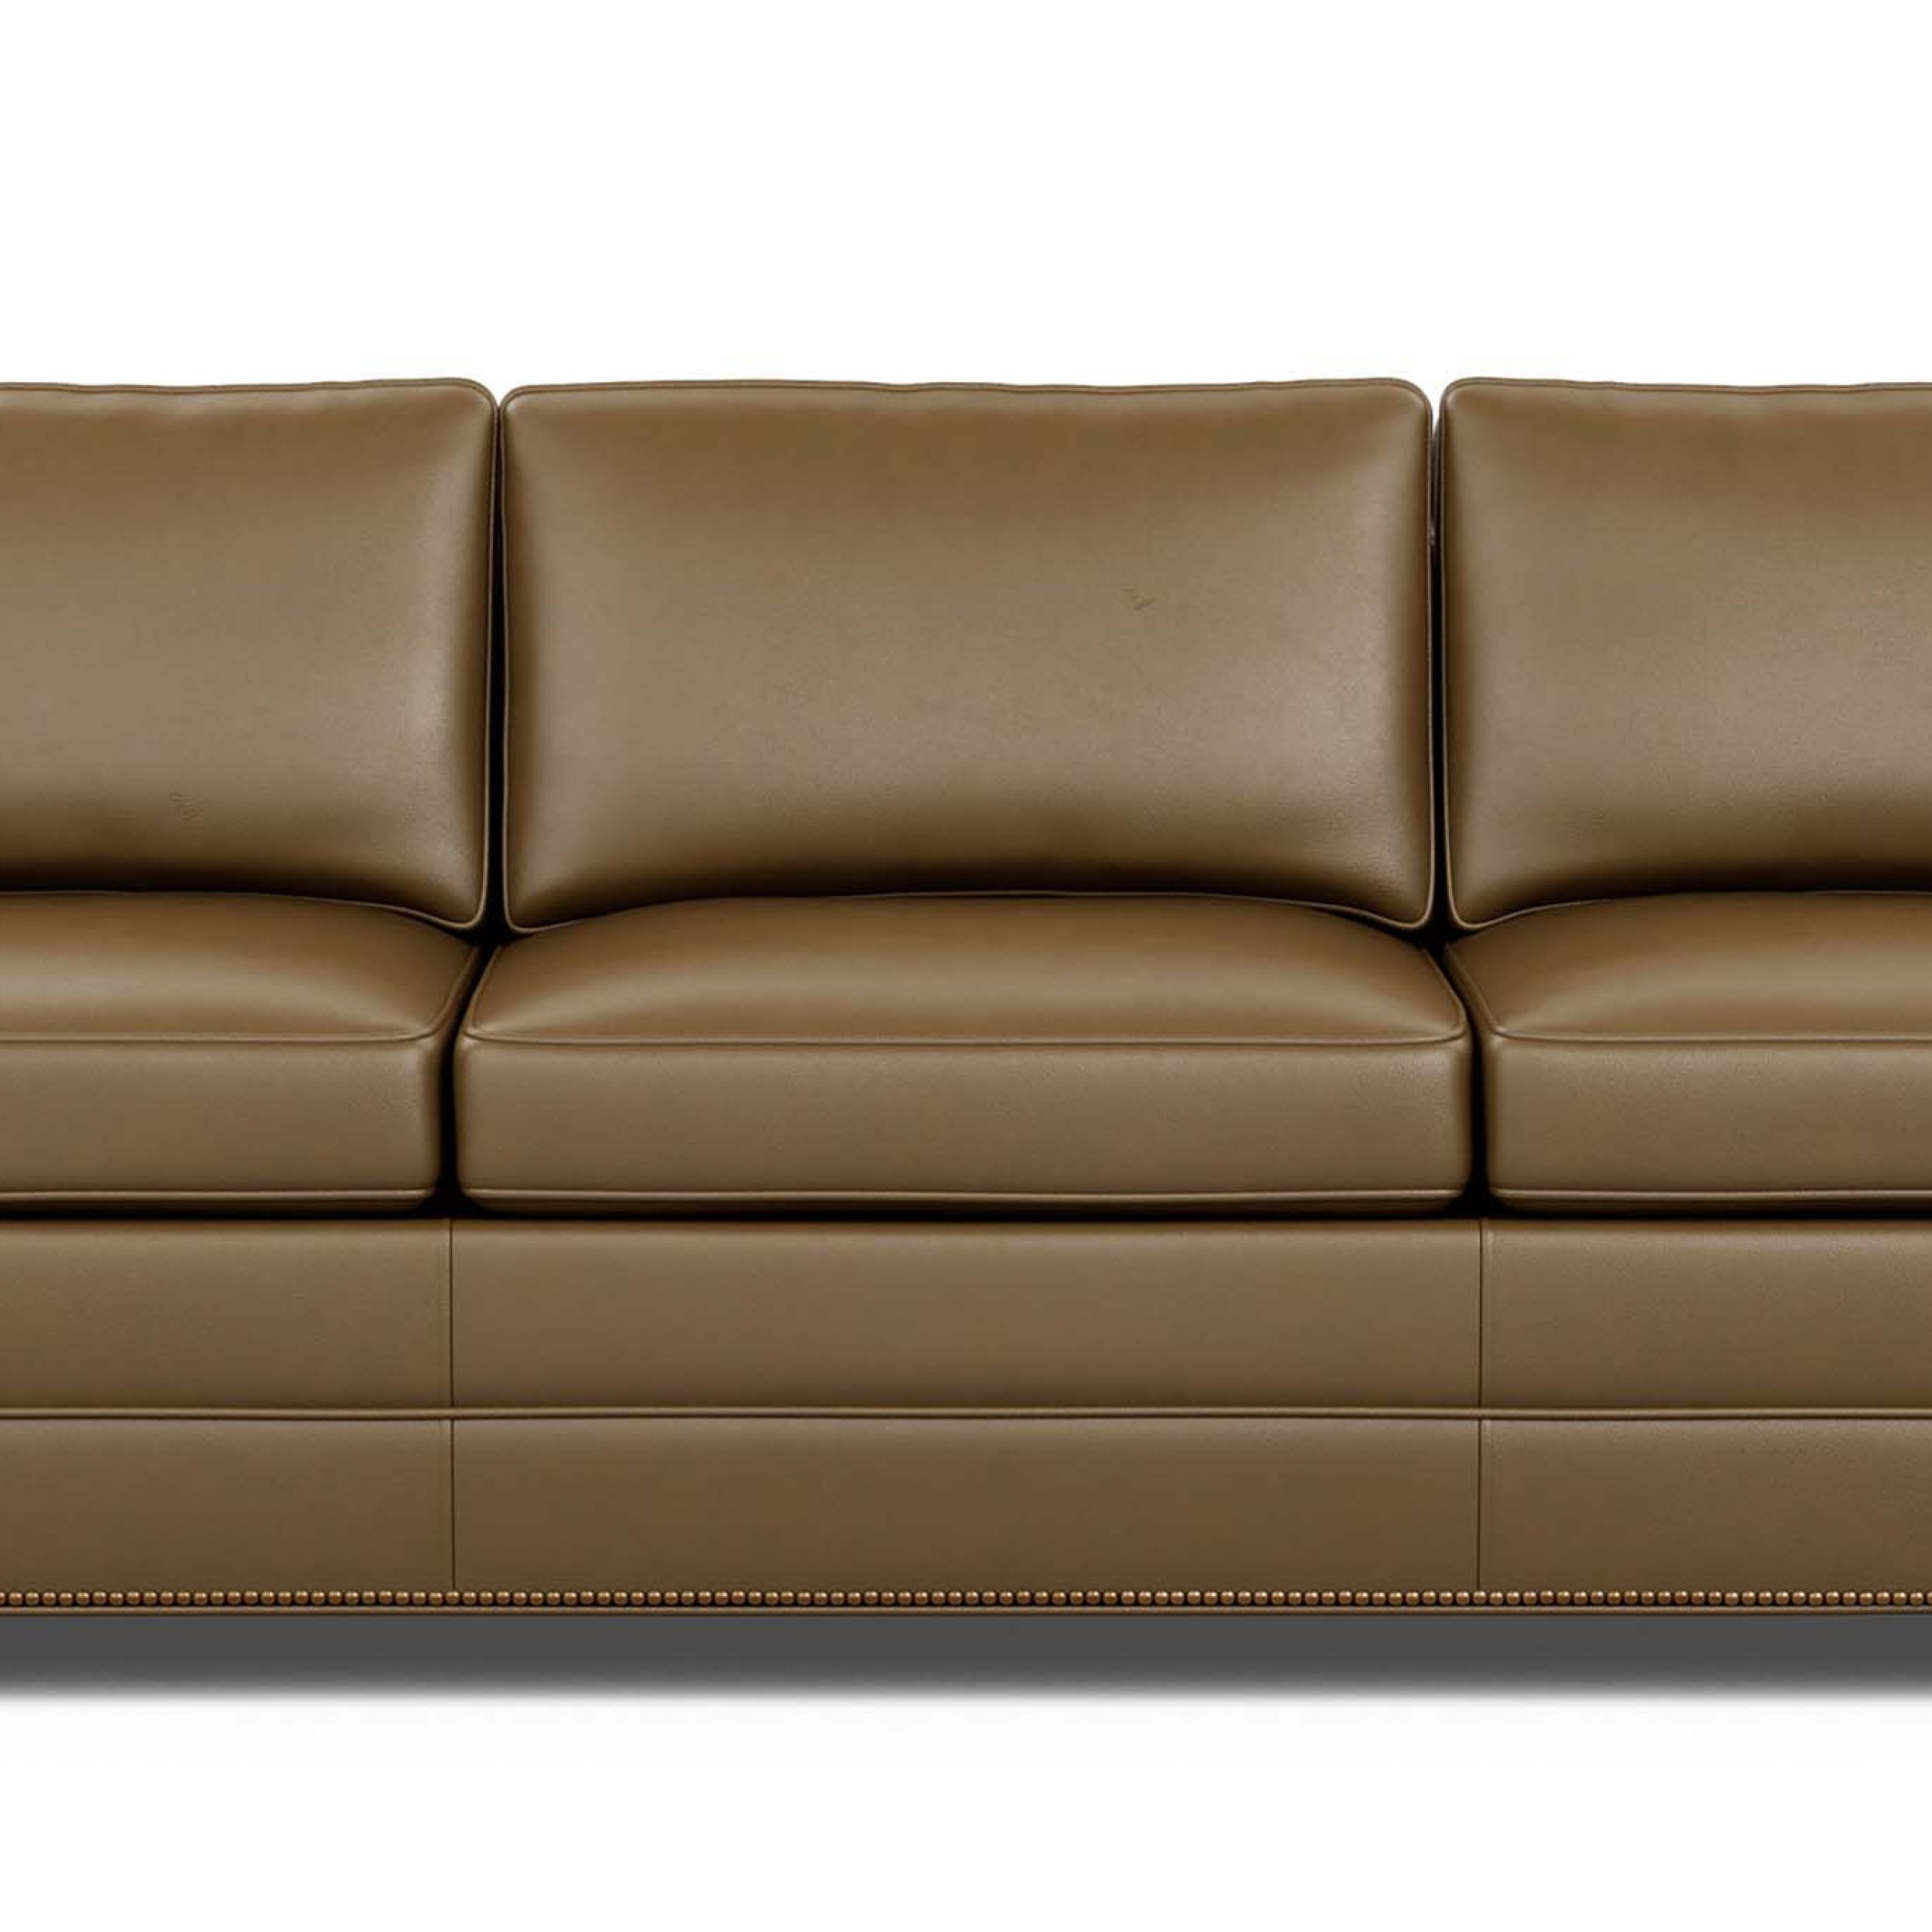 Astor Leather Sofa | Ethan Allen With Regard To Ethan Allen Sofas And Chairs (View 8 of 15)